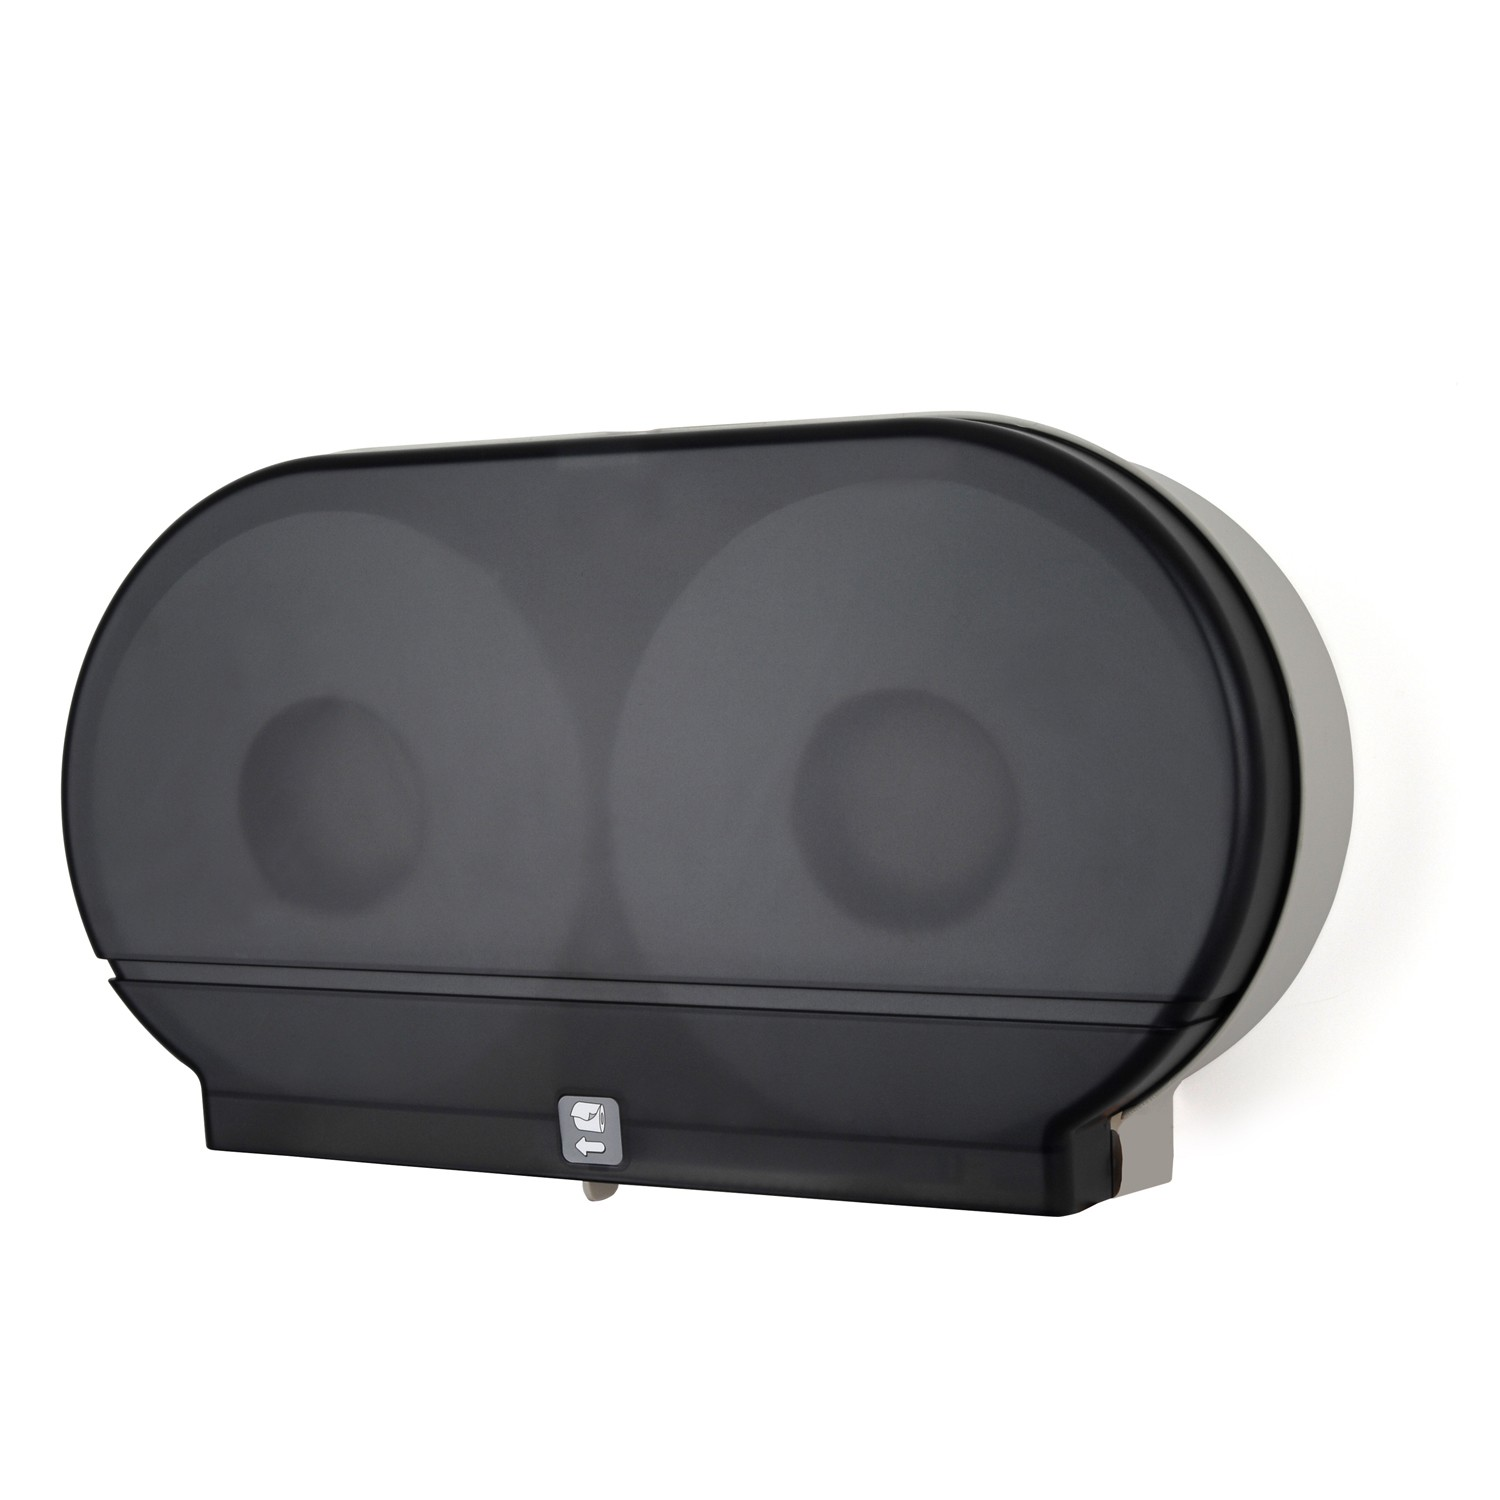 TOTALPACK® Twin Jumbo Tissue Dispenser Smoke Black